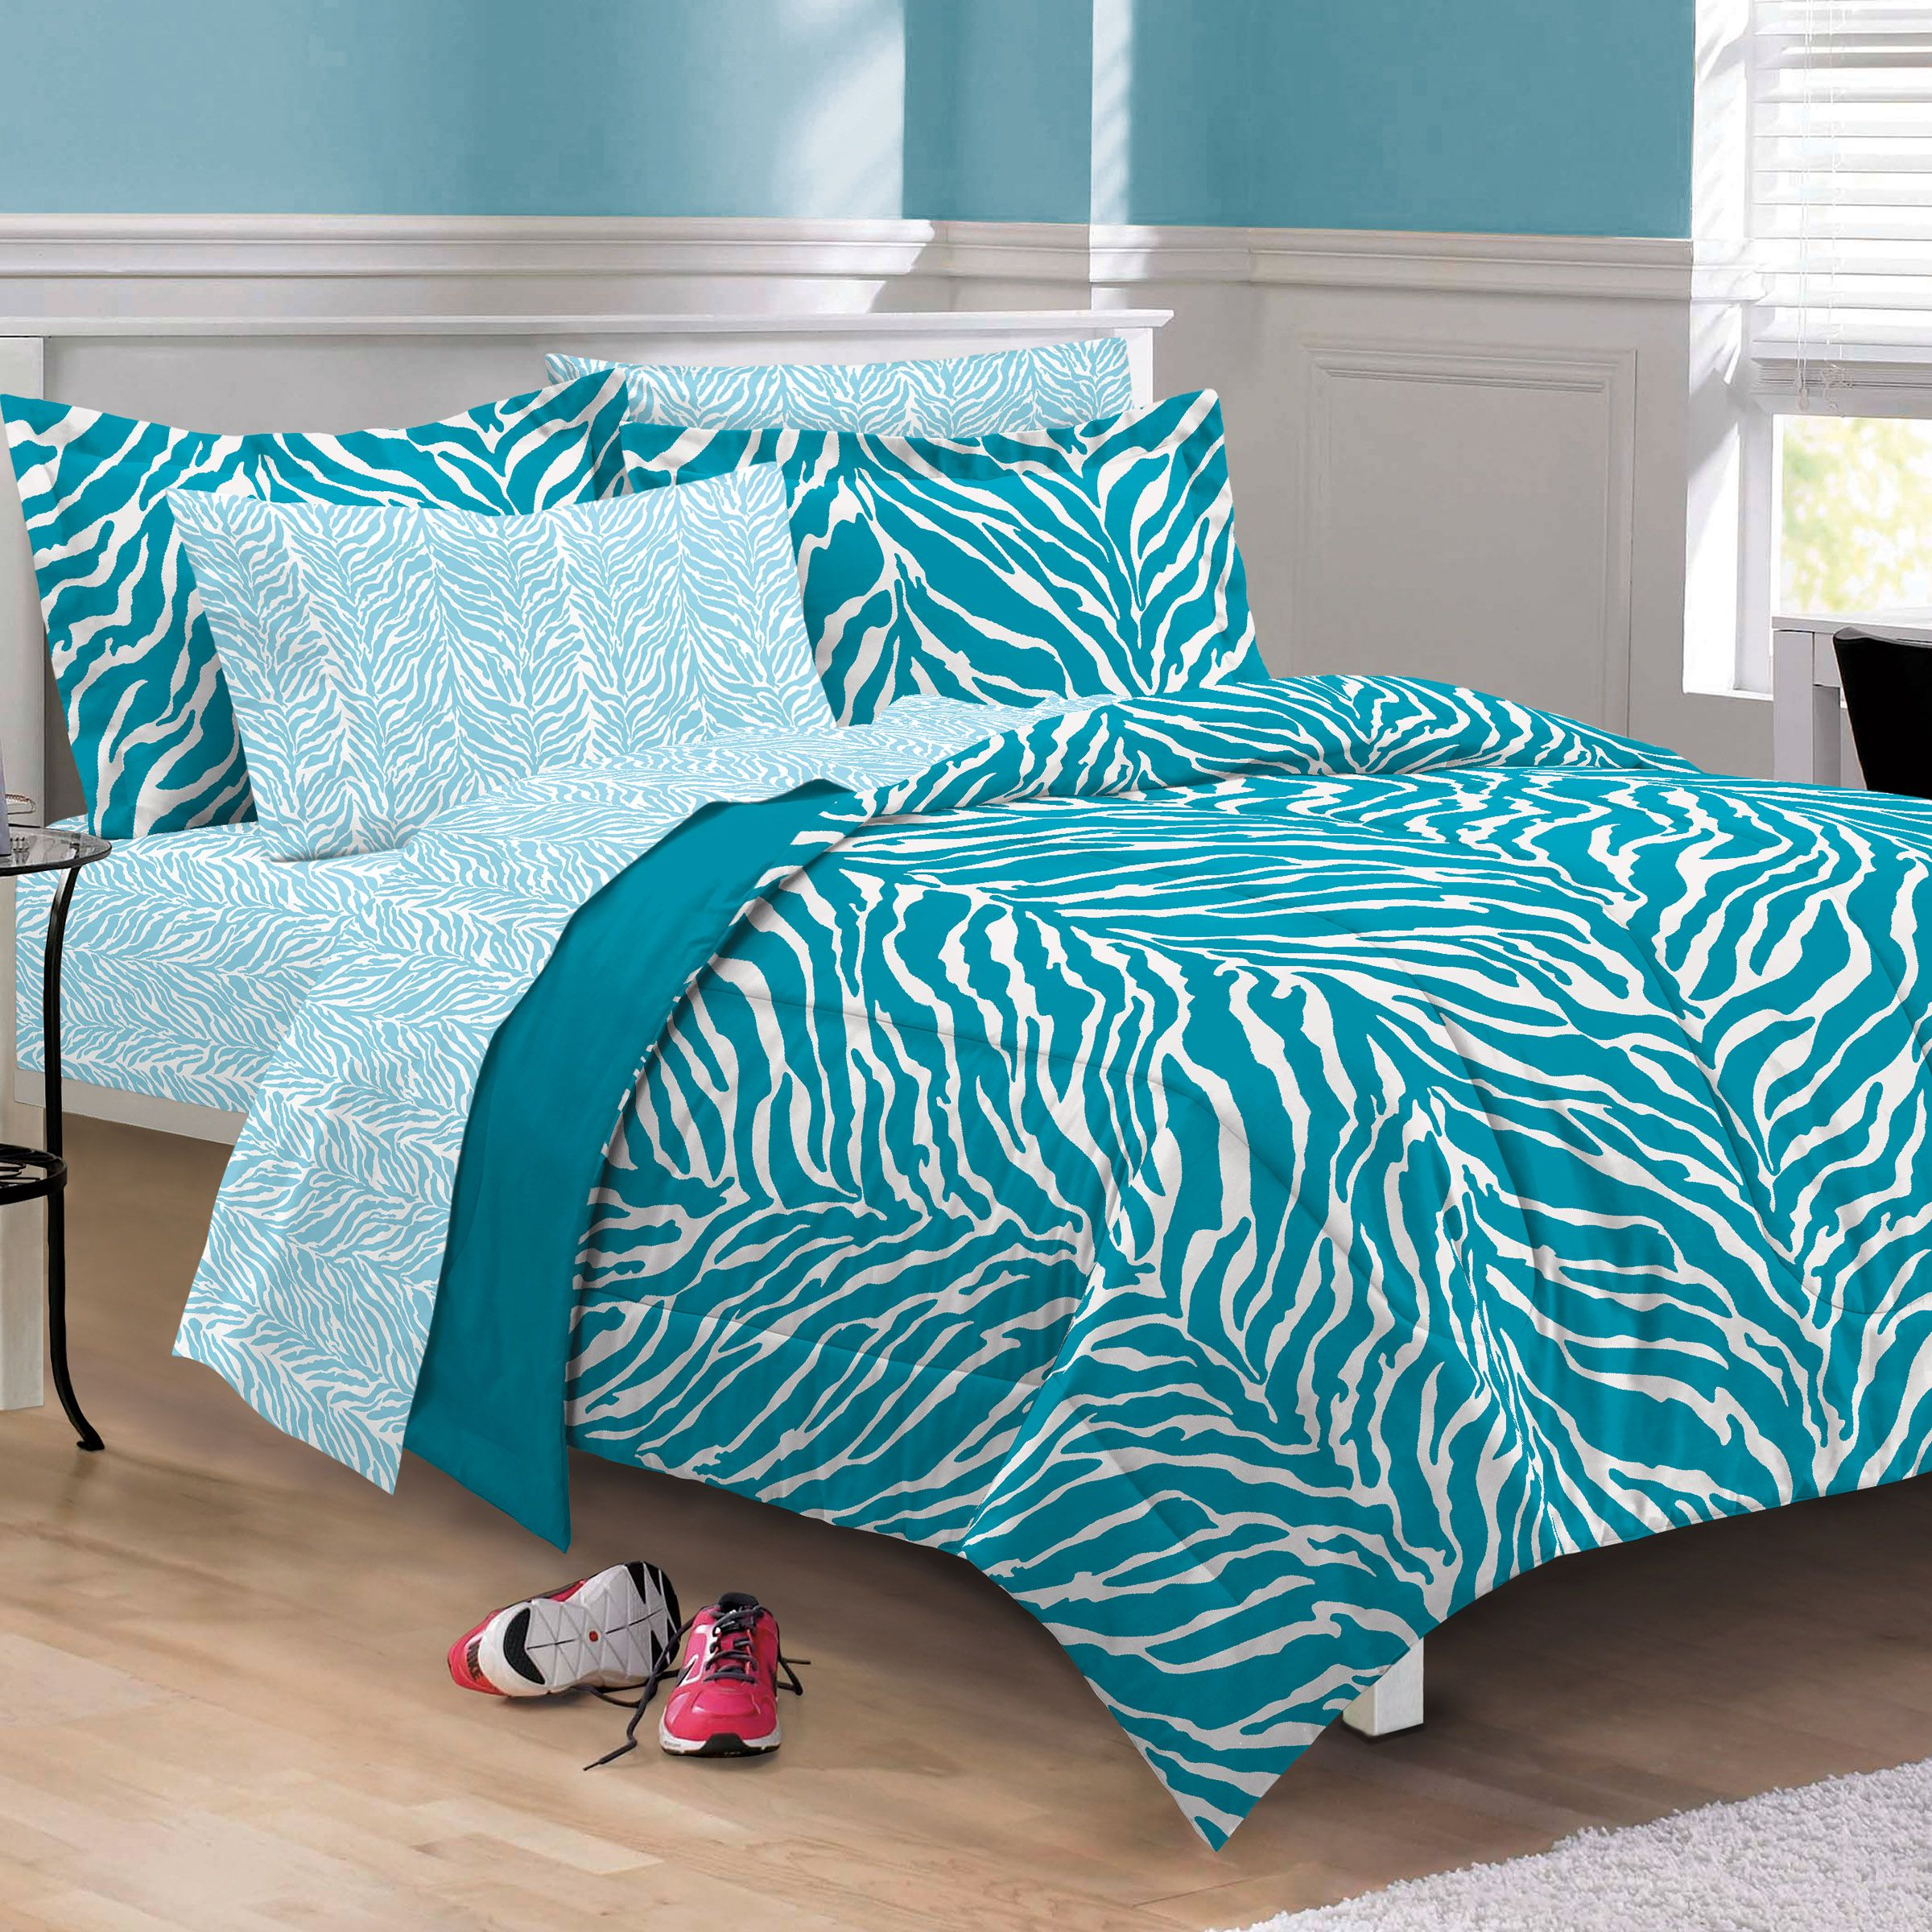 Cheap zebra print bedroom sets - Aqua Blue Zebra Bedding Twin Xl Full Queen Teen Girl Comforter Set Bed In A Bag